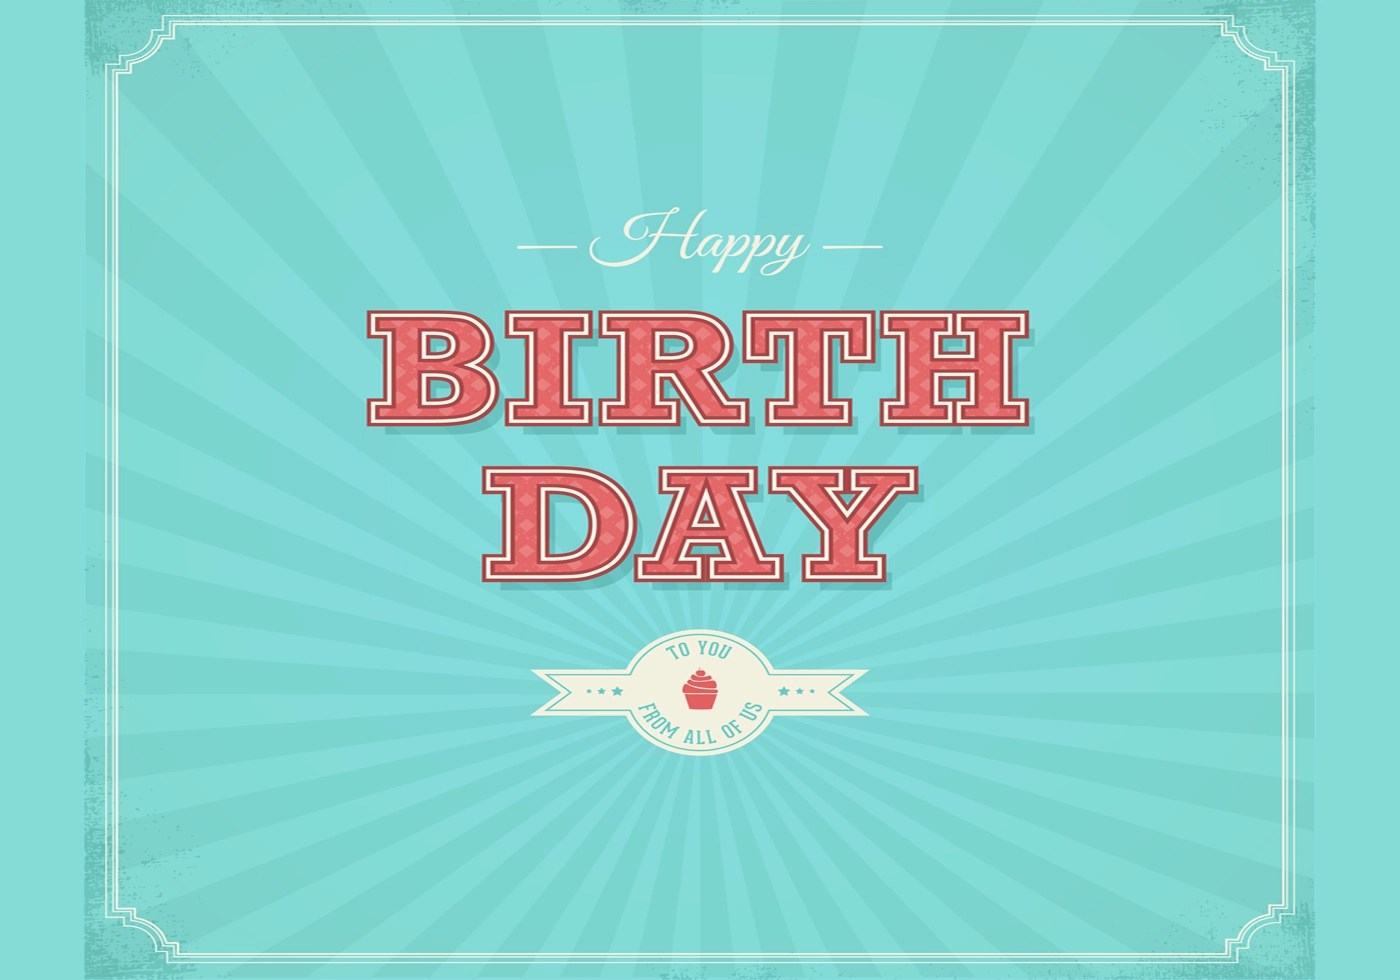 Cute Birthday Cake Wallpaper Retro Happy Birthday Typographical Background Vector